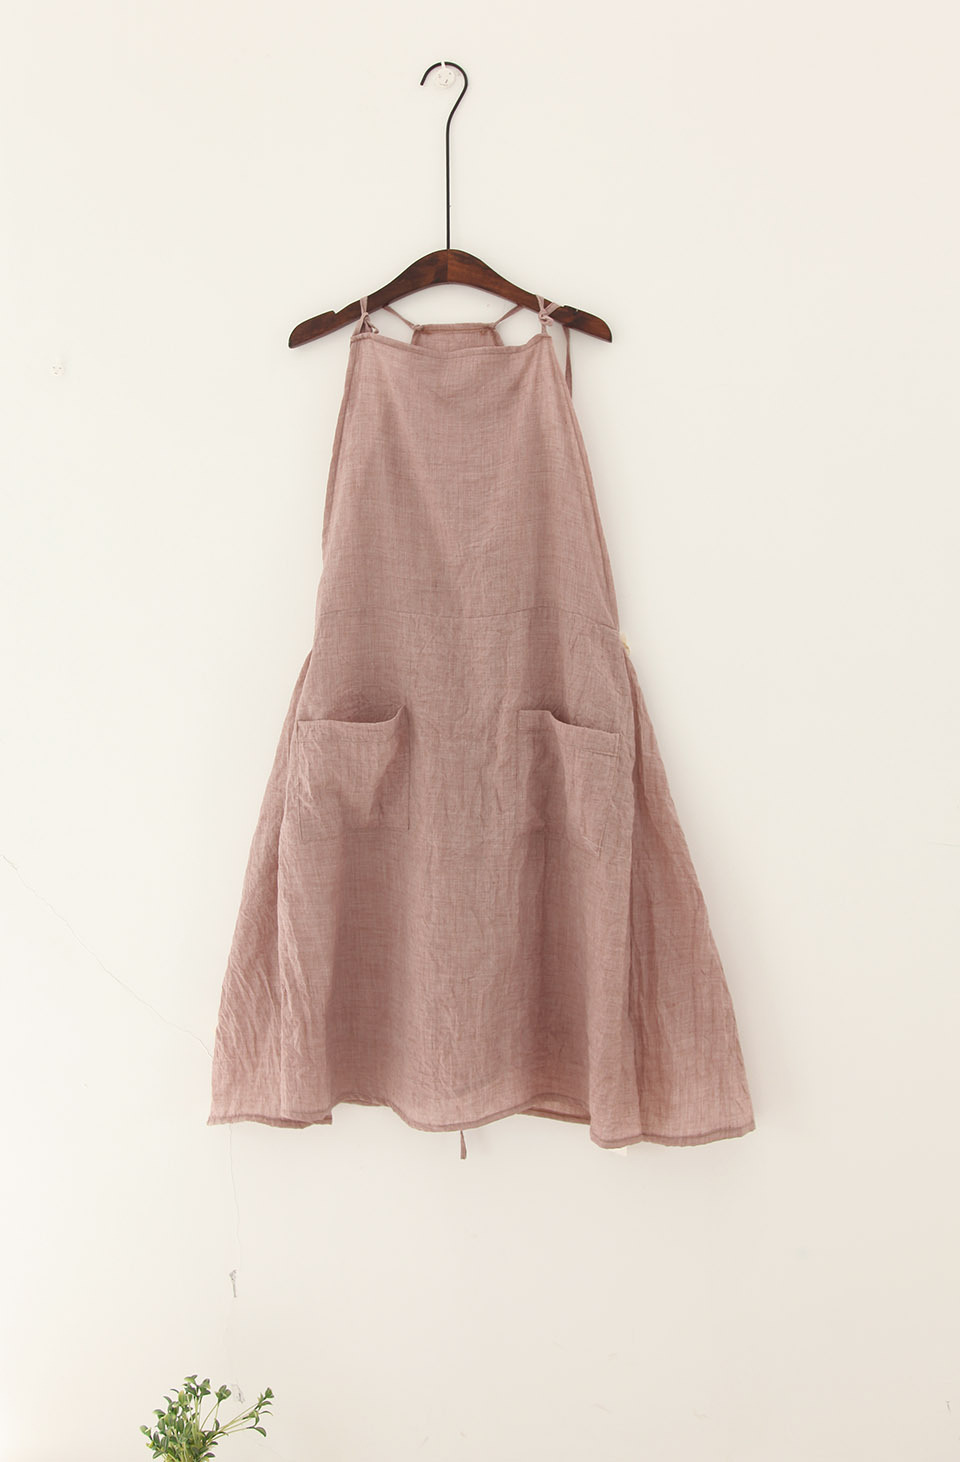 Bayan elbise vestido vintage knitted gothic ropa mujer - Ropa vintage sevilla ...